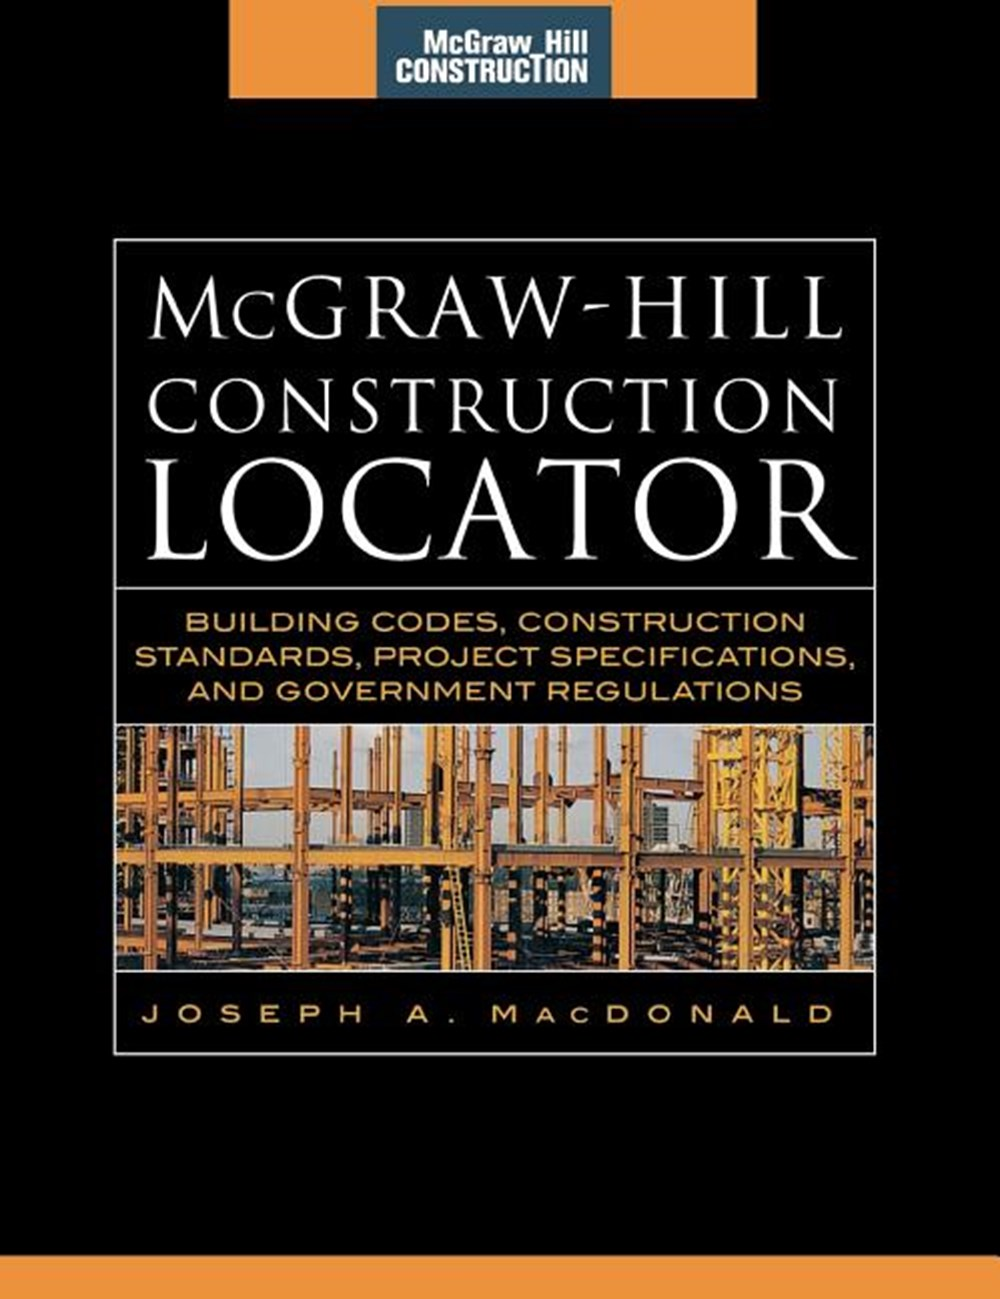 McGraw-Hill Construction Locator (McGraw-Hill Construction Series) Building Codes, Construction Stan